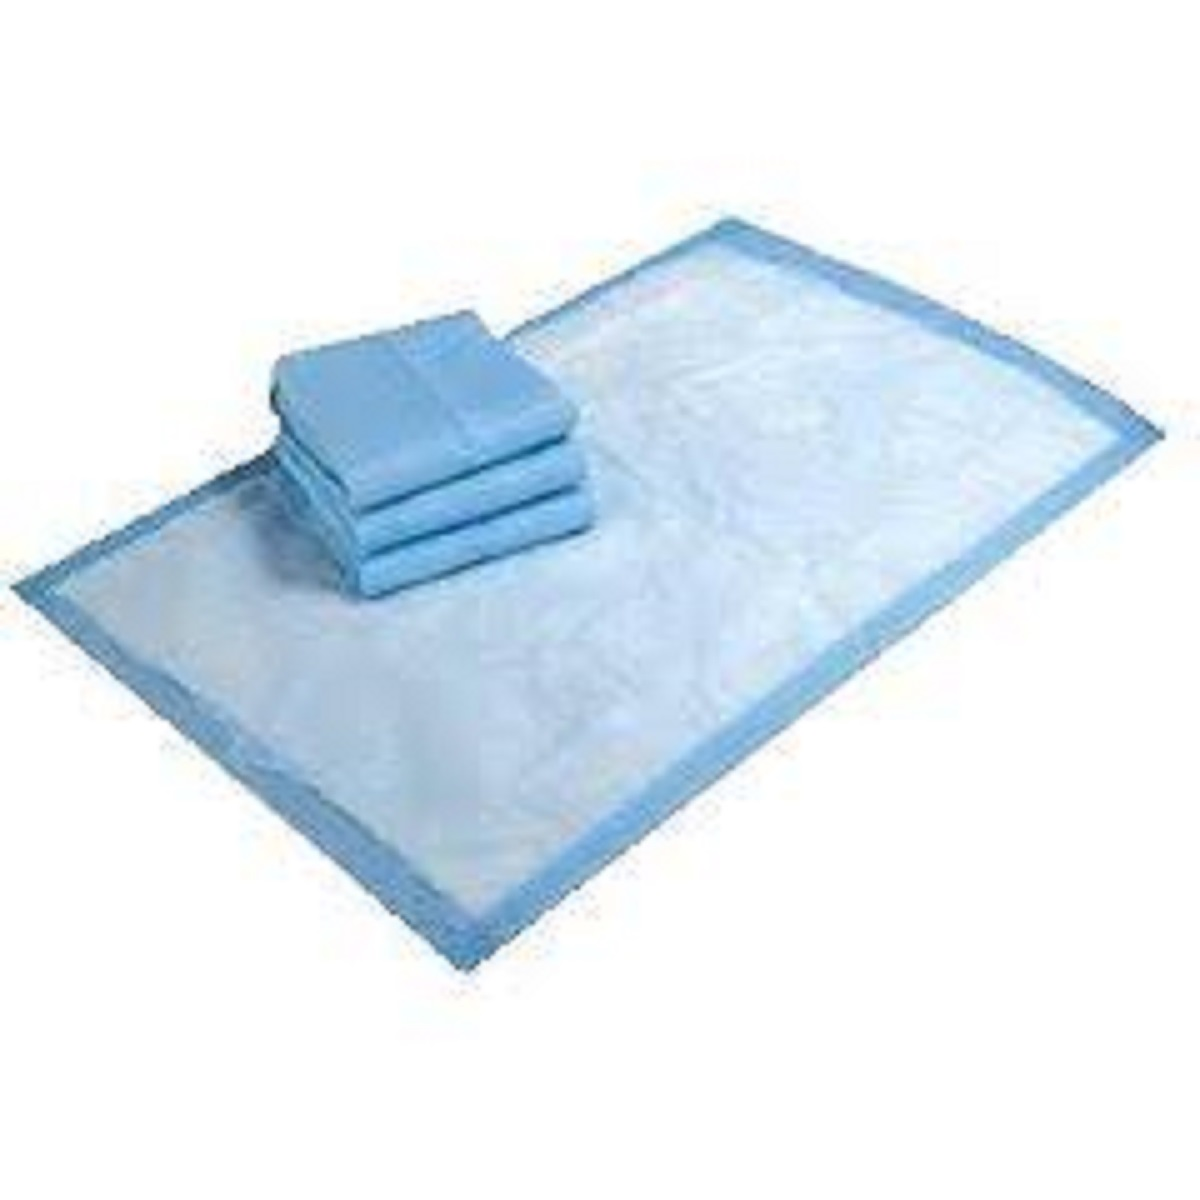 300 23x36 Pads Adult Urinary Incontinence Disposable Bed